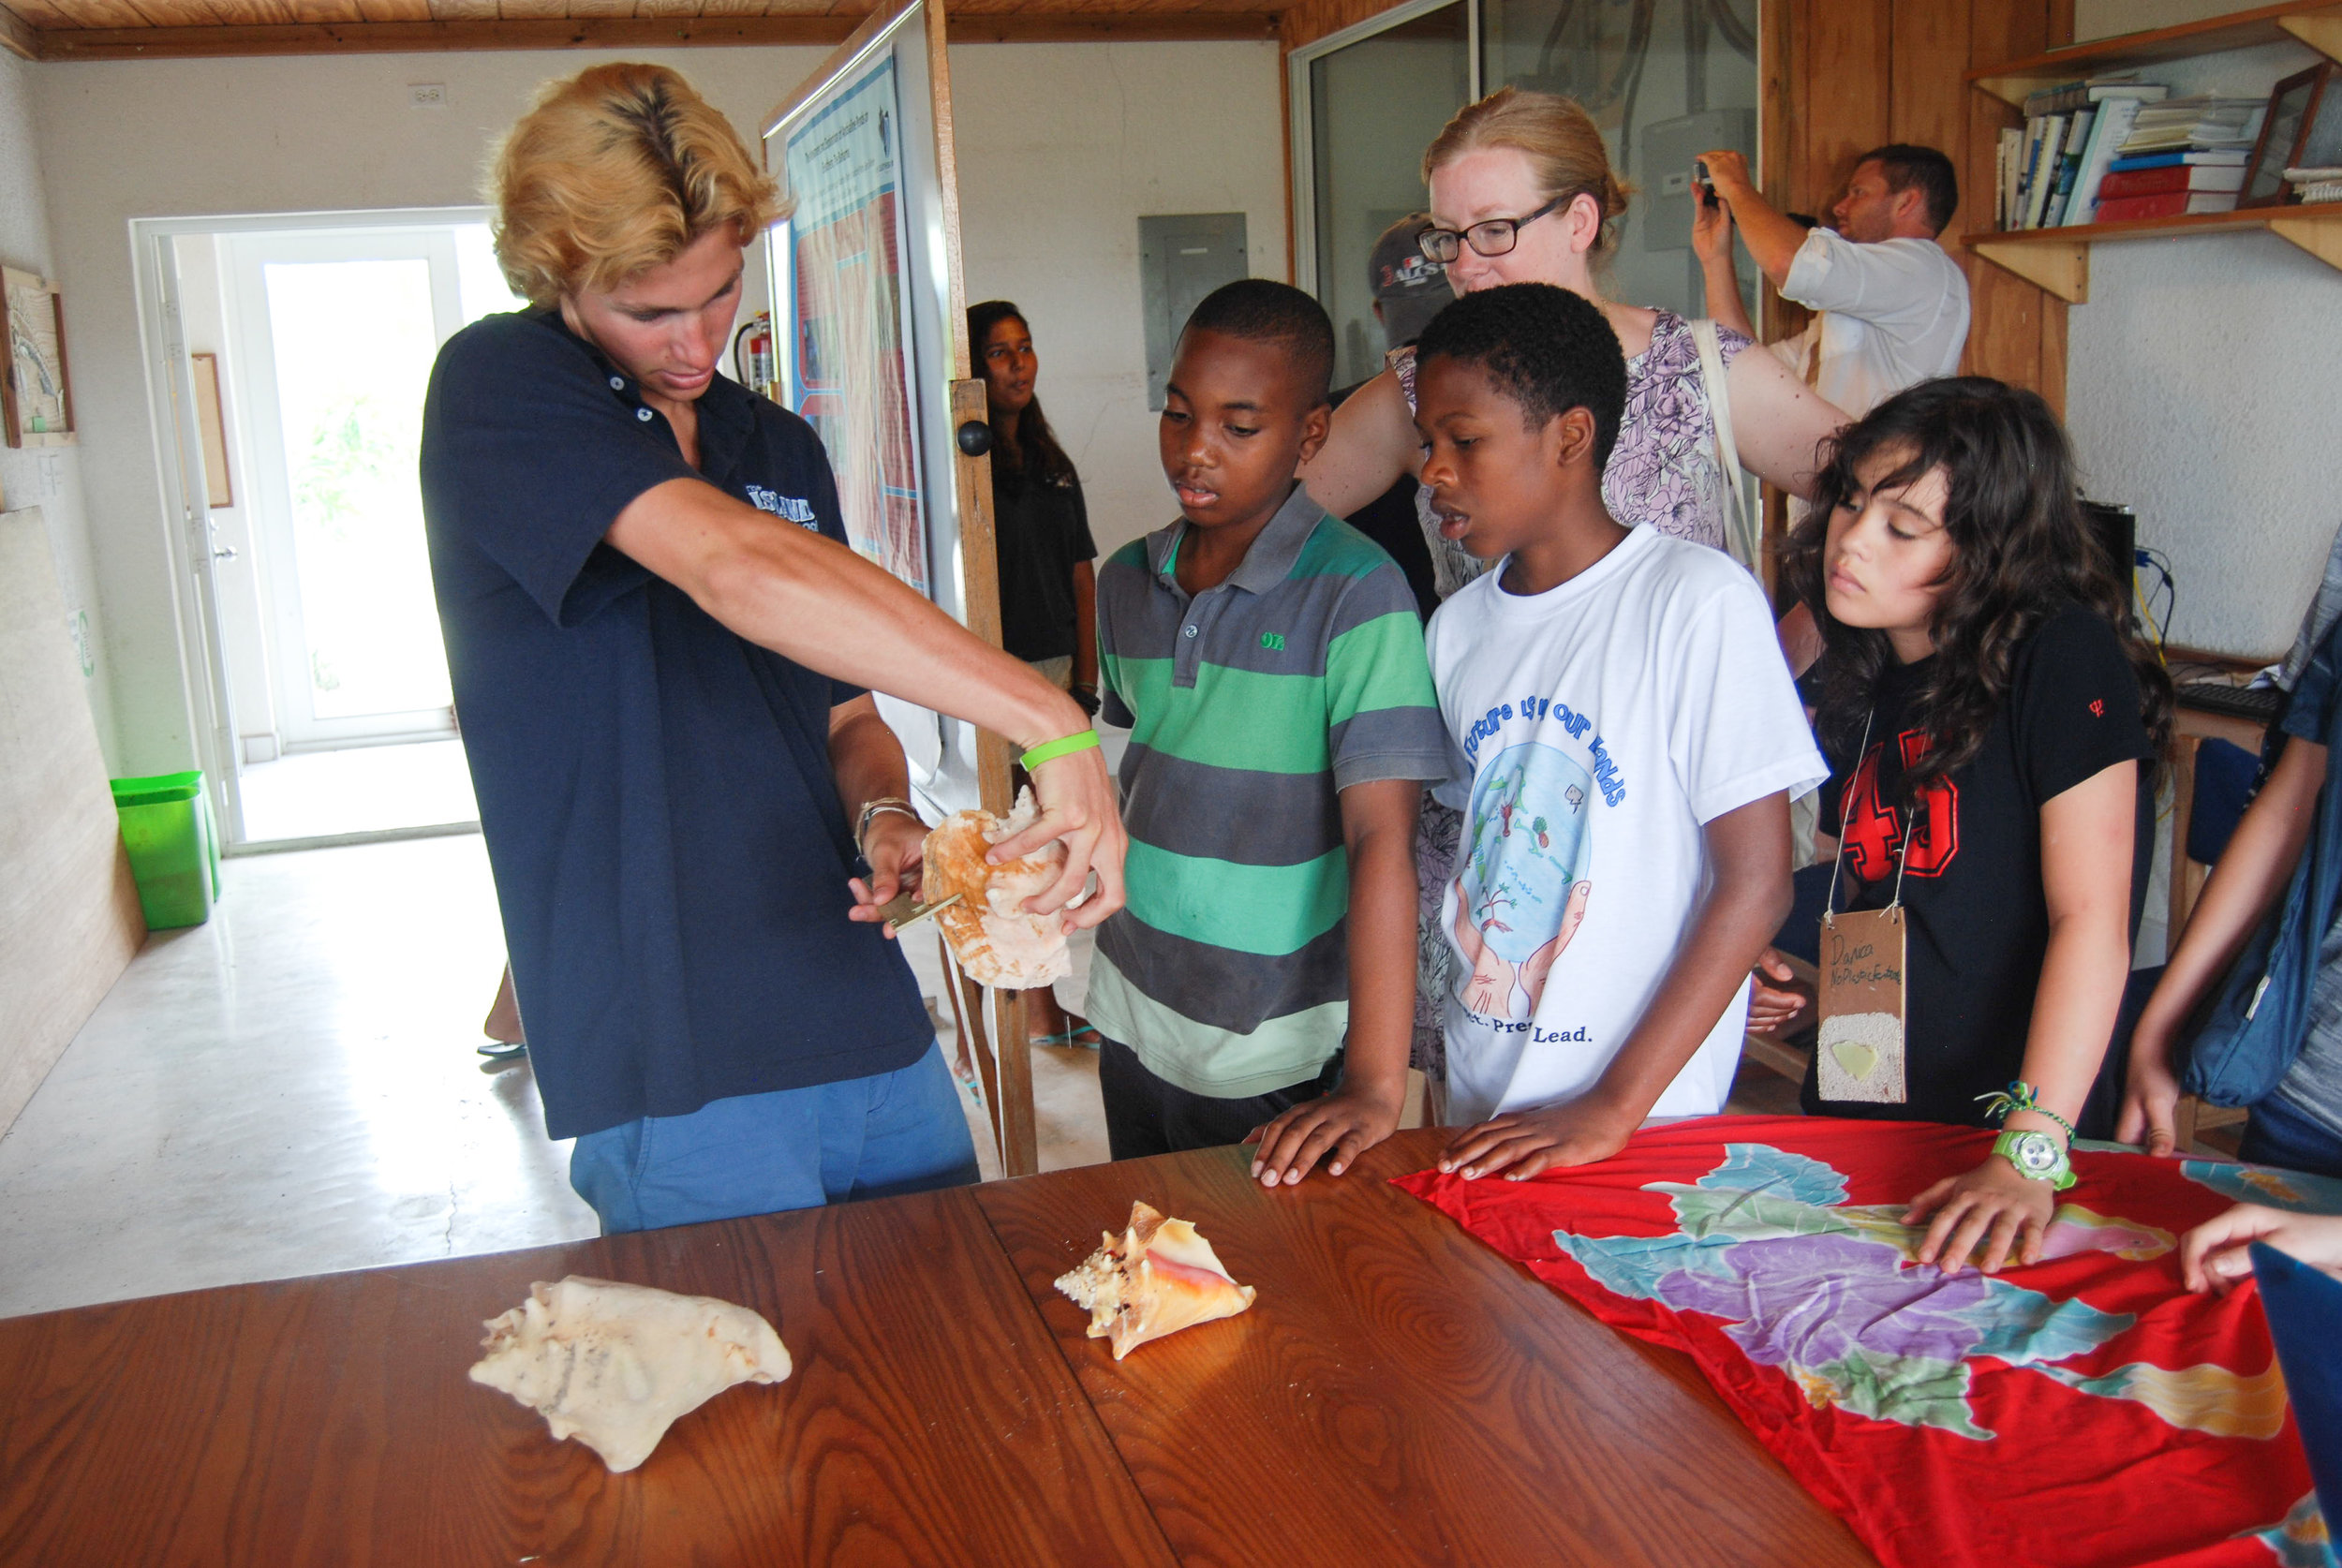 Spring 15 Island School student shows a tour group how to measure a queen conch. Photo credit: Cam Powell